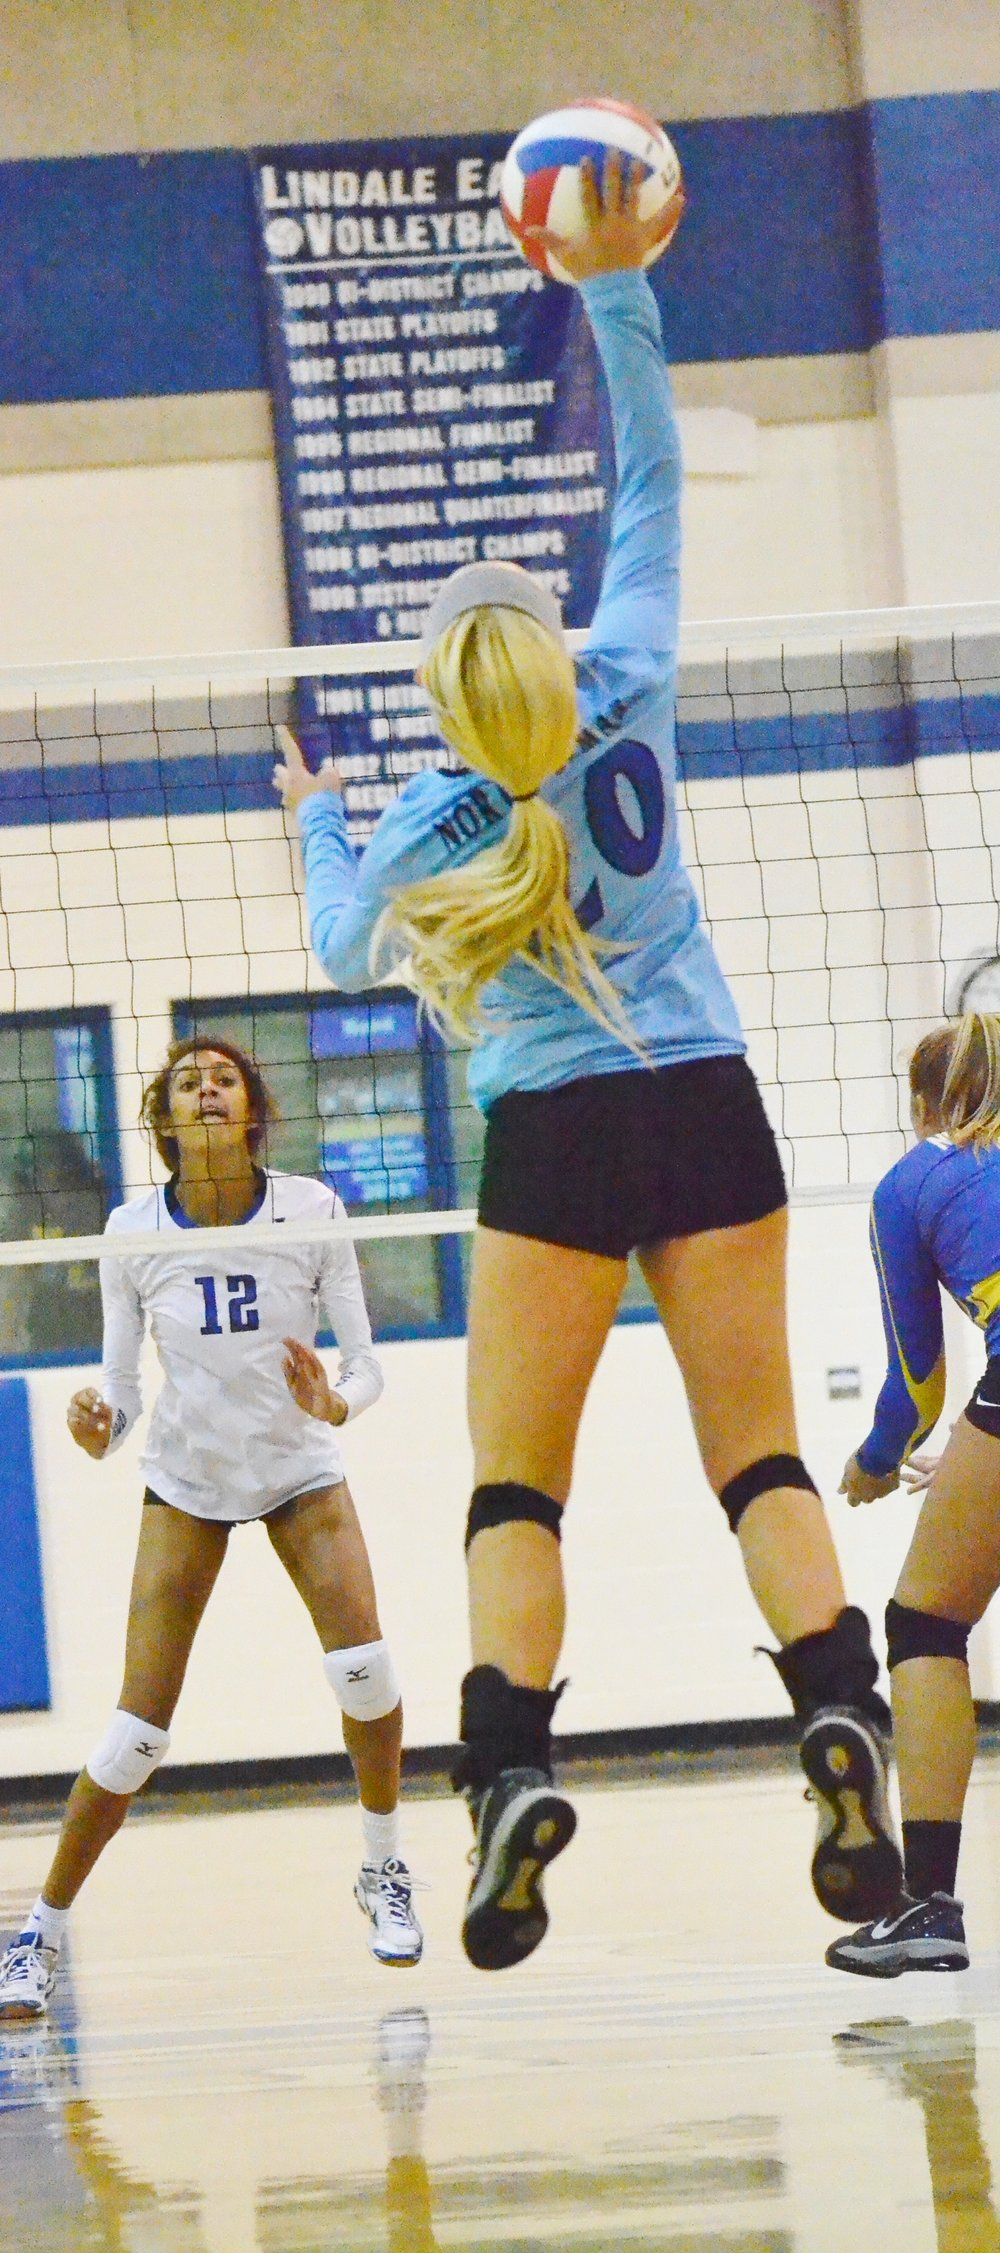 (Photo by Beverly White) Natalie Allen hitting the ball for North Lamar